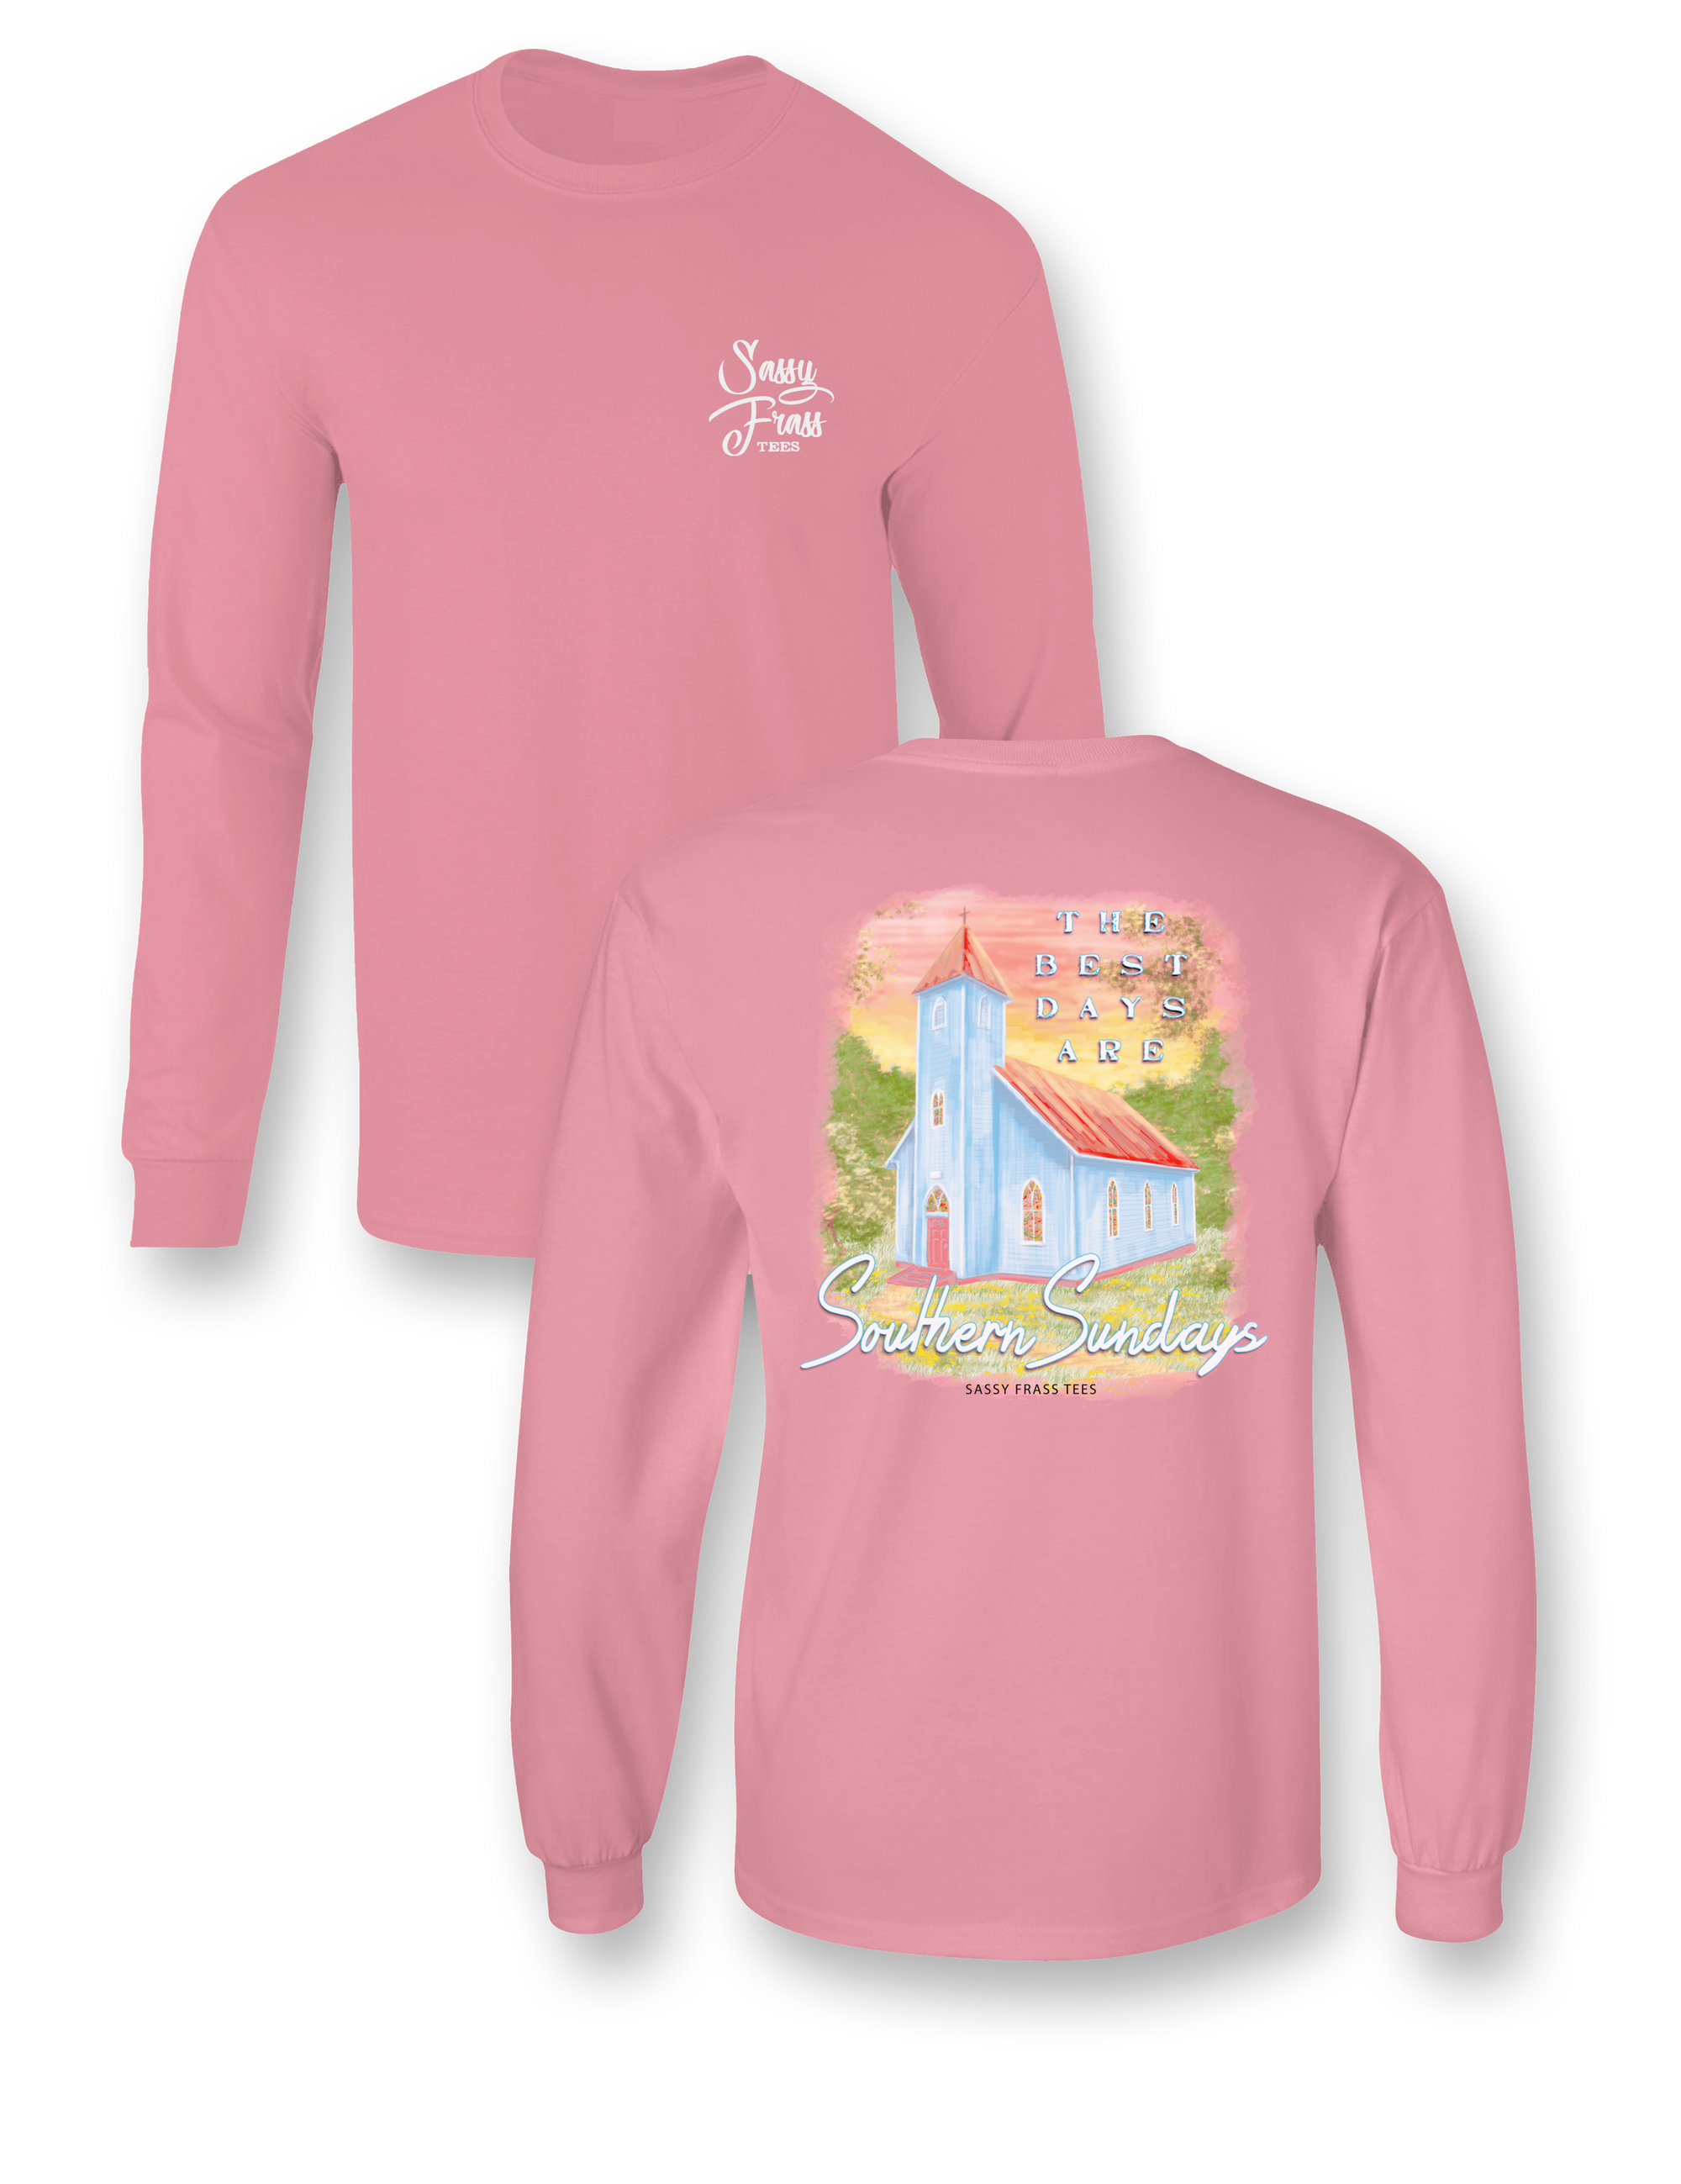 Sassy Frass Southern Sundays Church Comfort Colors Long Sleeve T-Shirt